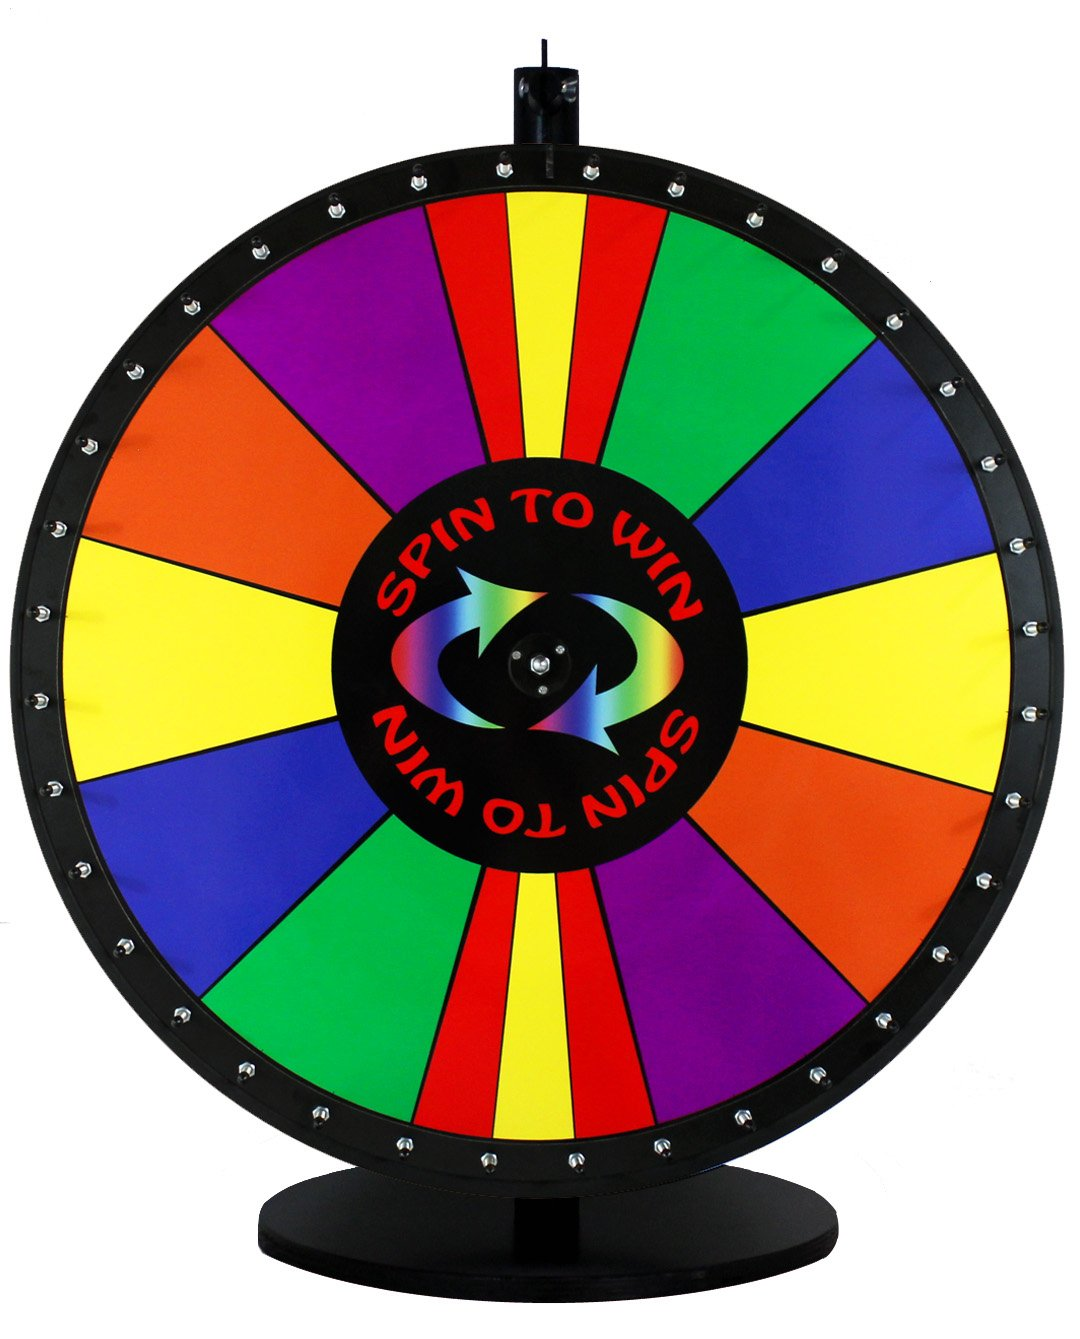 30in Spin to Win Dry Erase Prize Wheel with Special Sections by SpinningDesigns